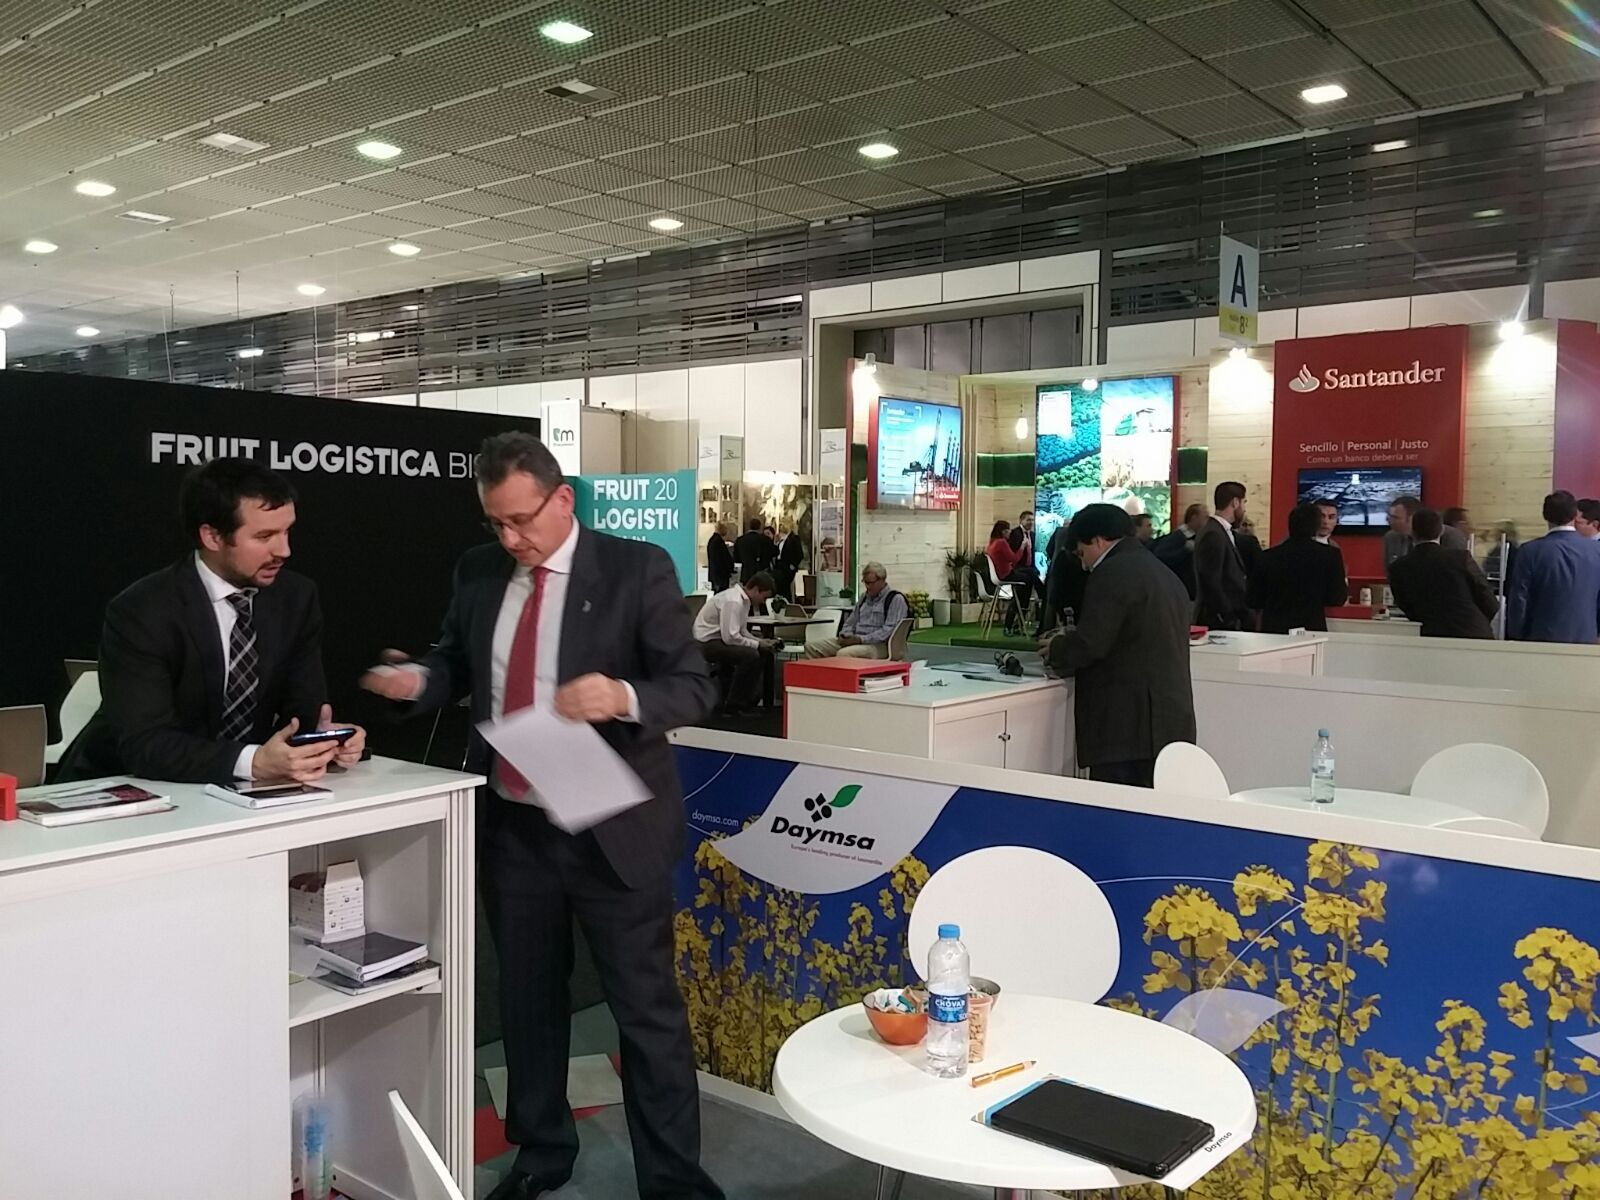 Satisfaction with Daymsa´s participation at Fruit Logistica